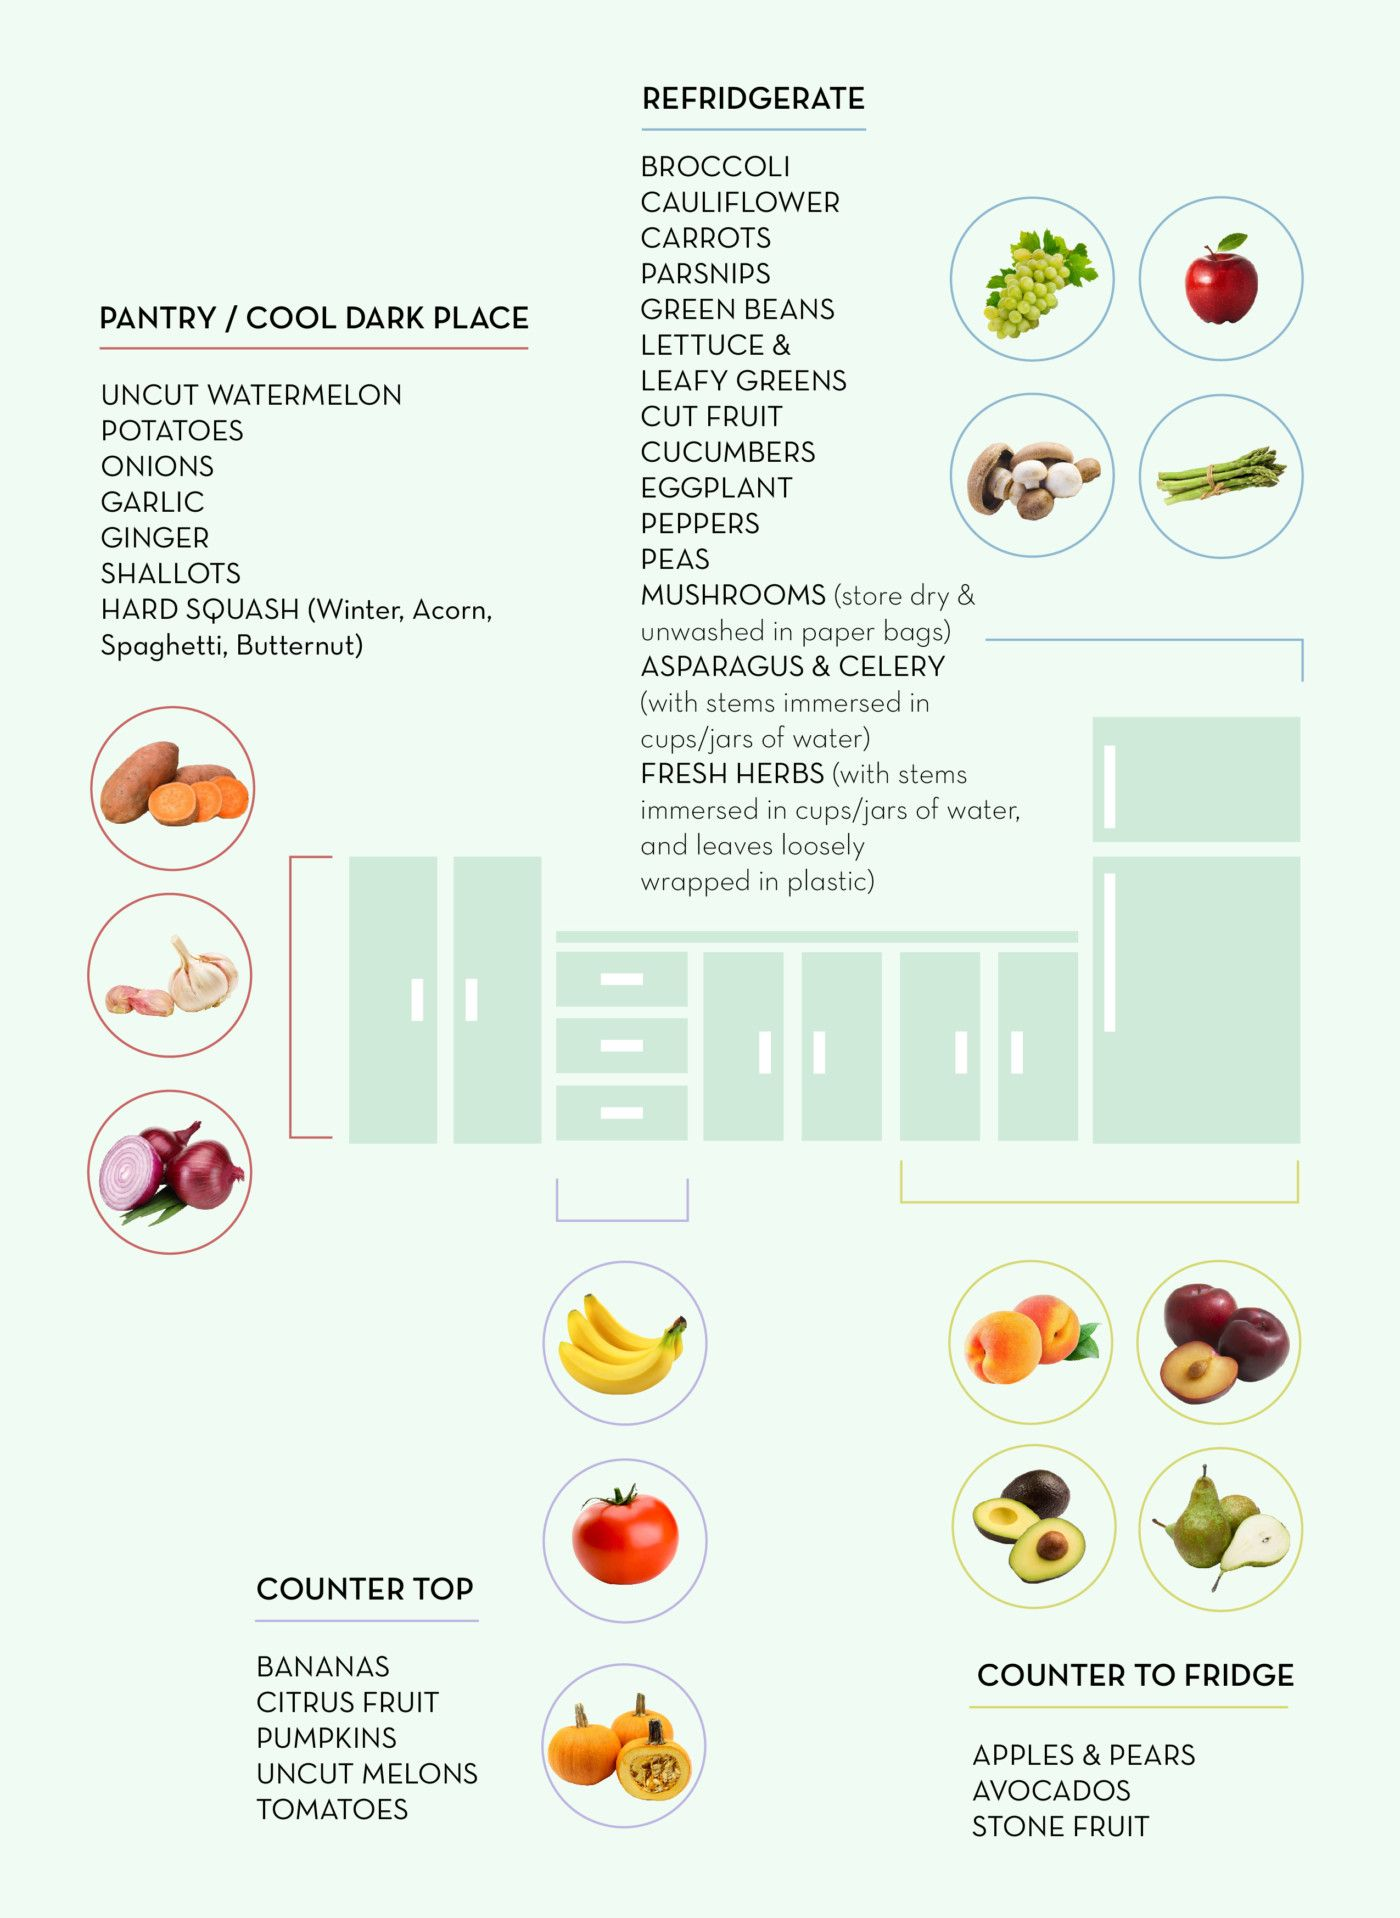 How To Properly Store Fresh Produce In The Fridge How To Store Peaches How To Store Spinach Food Waste,Kielbasa Sausage Recipe Ideas